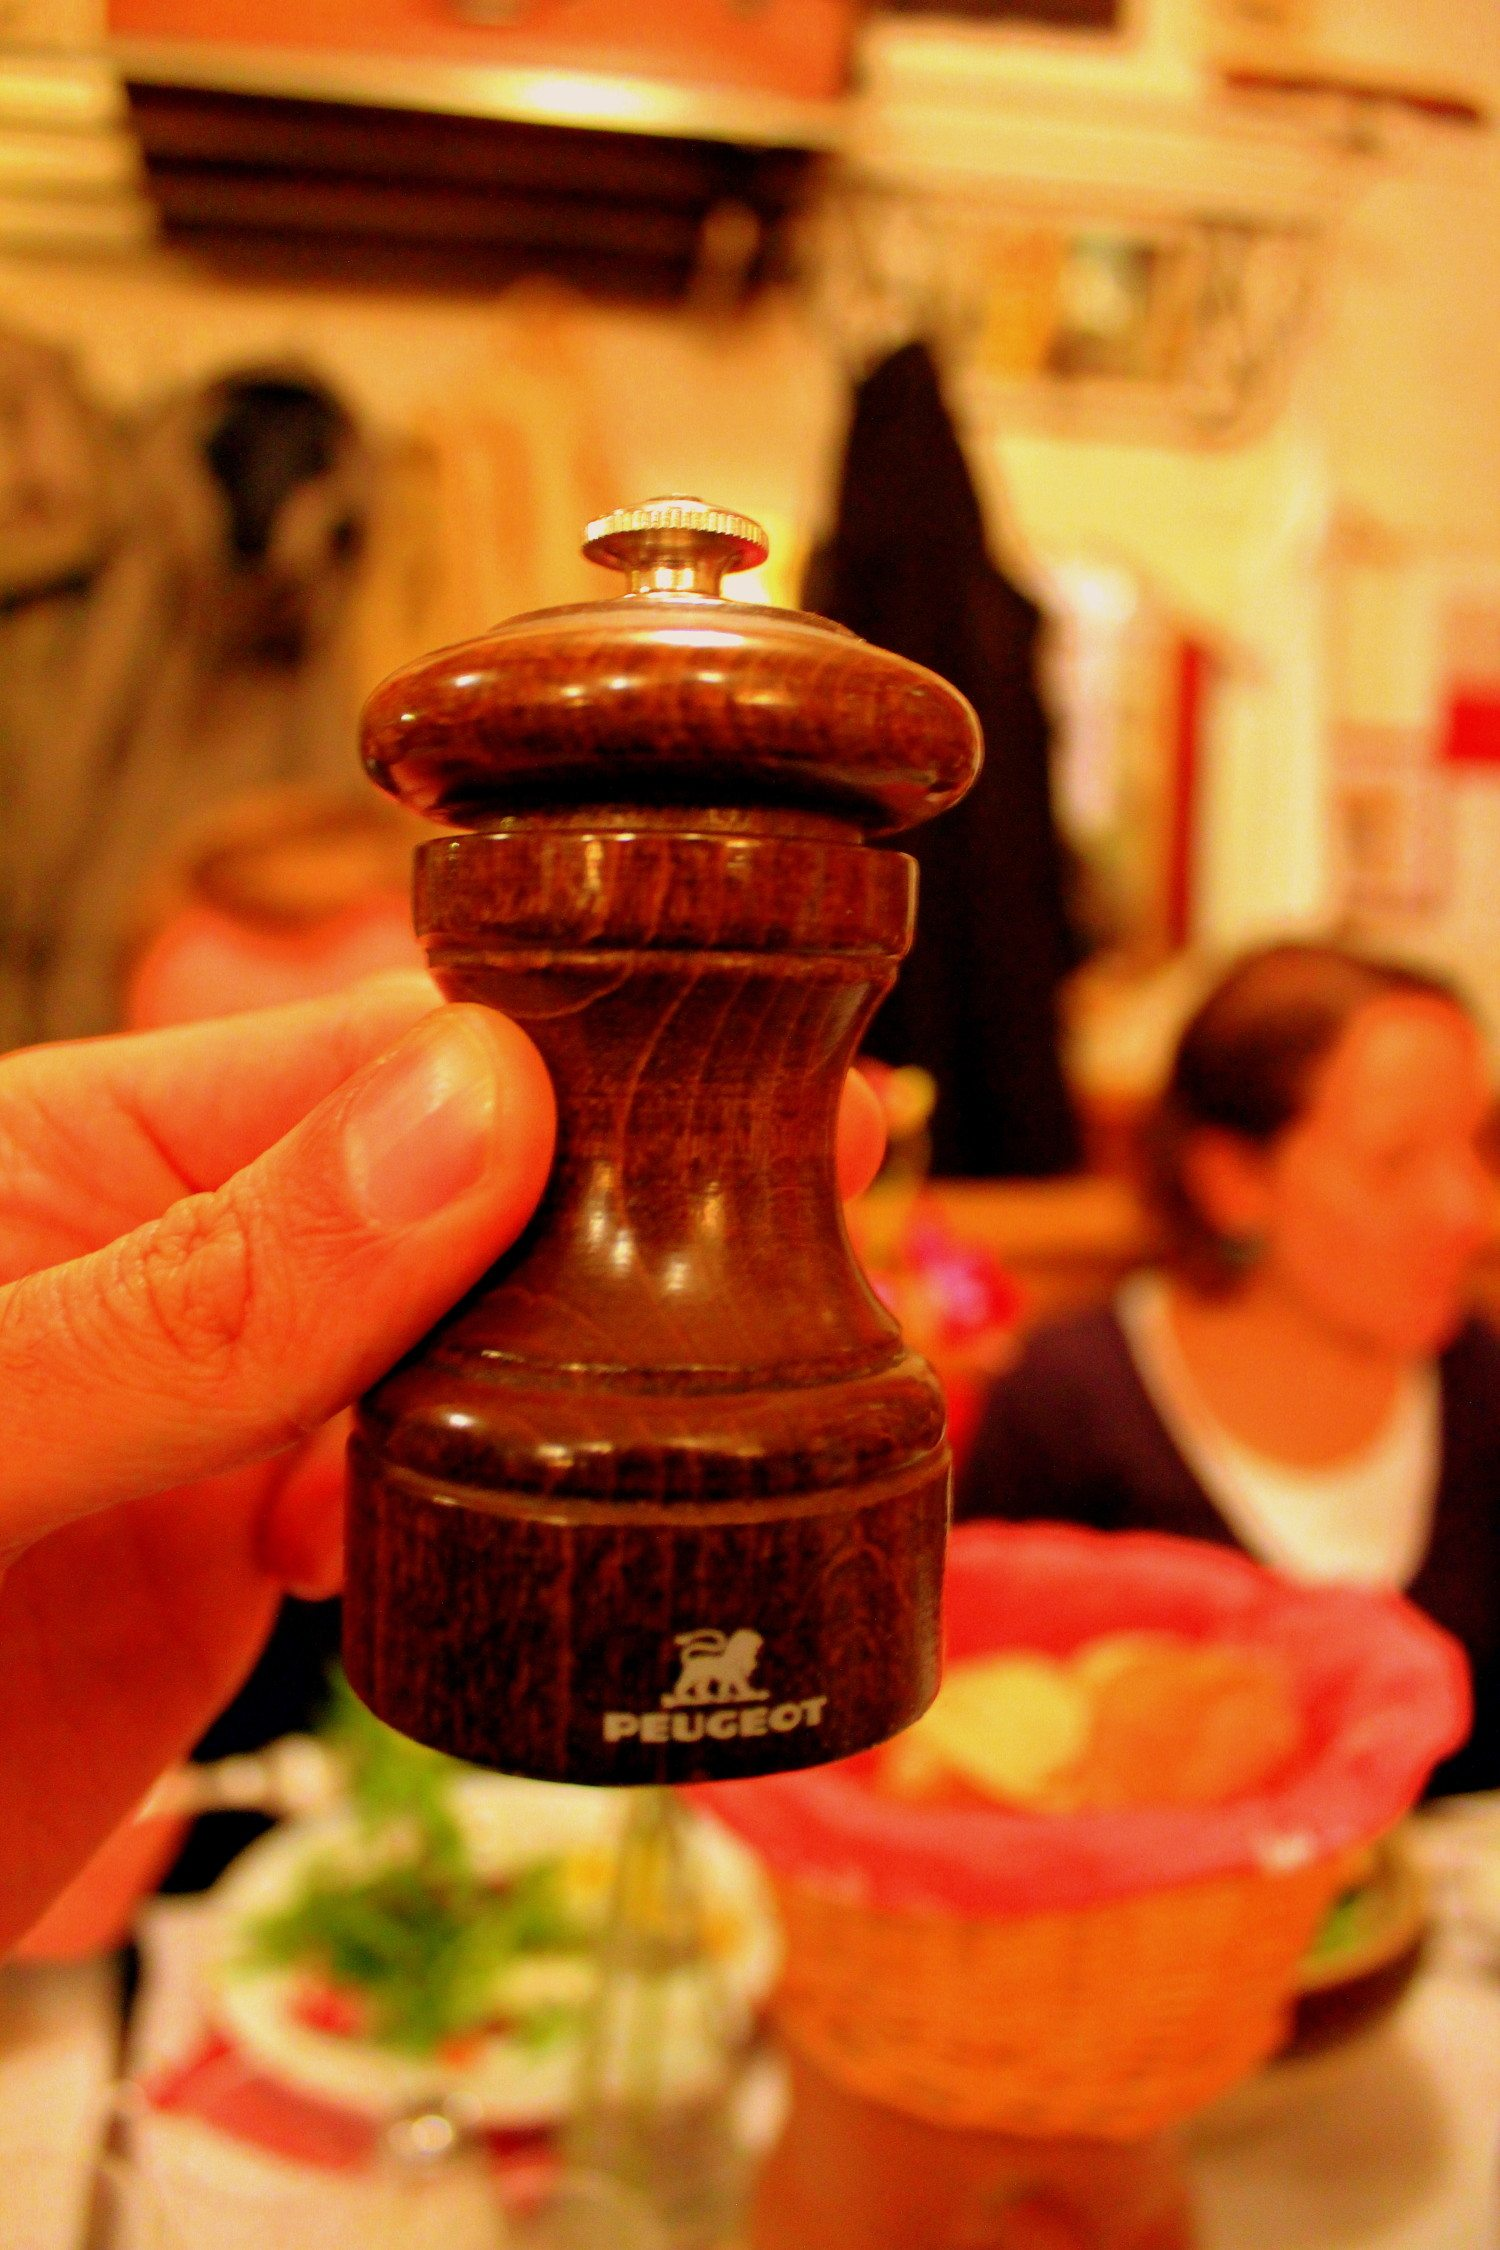 peugeot pepper mill photo